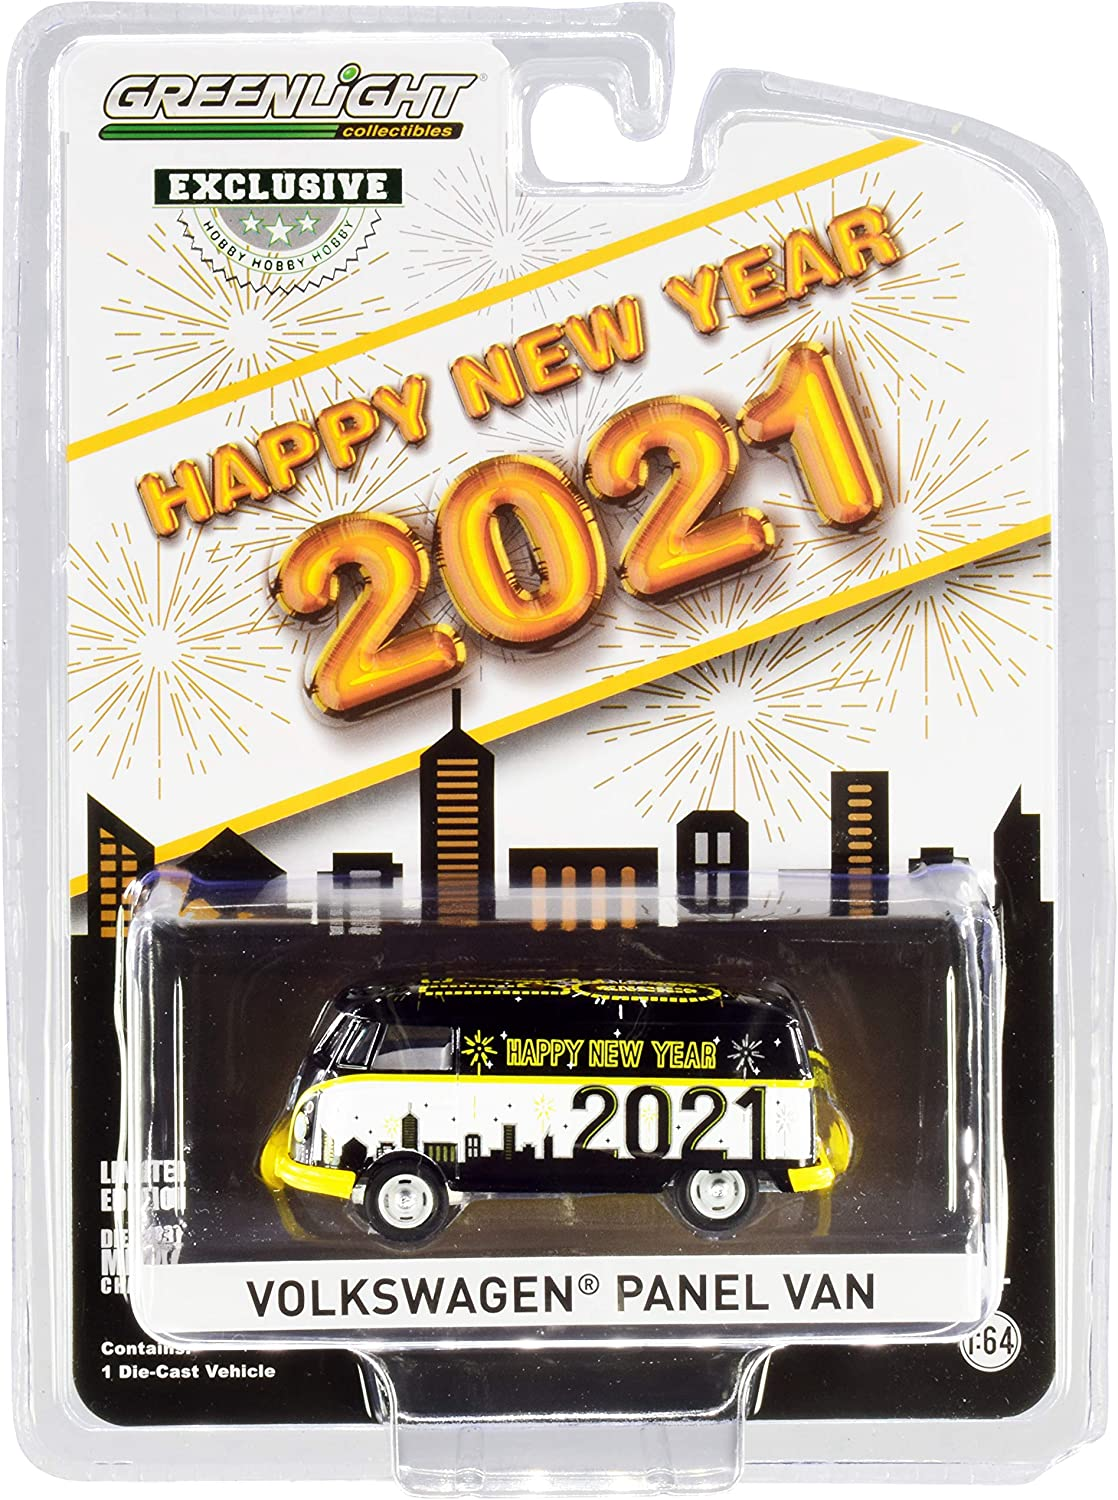 Volkswagen Panel Van Chinese Zodiac 2021 Year of The Ox Hobby Exclusive 1//64 Diecast Model by Greenlight 30223